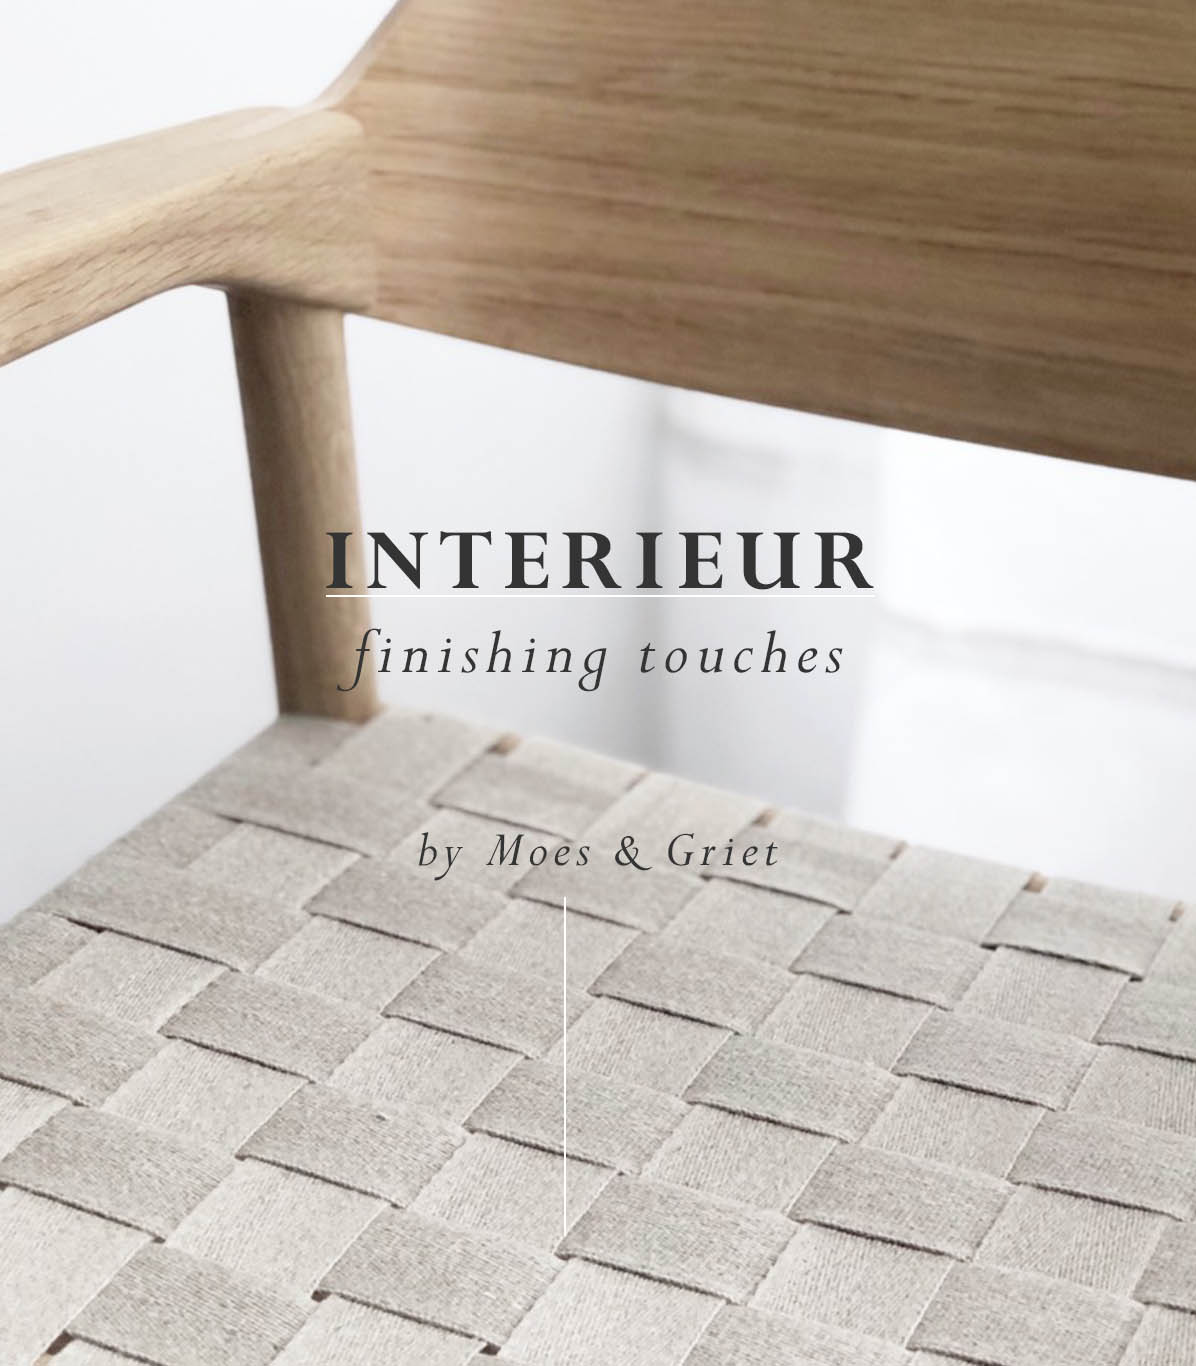 Interieur Persoonlijk Maken The Journal How To Style Interieur Finishing Touches Moes Griet